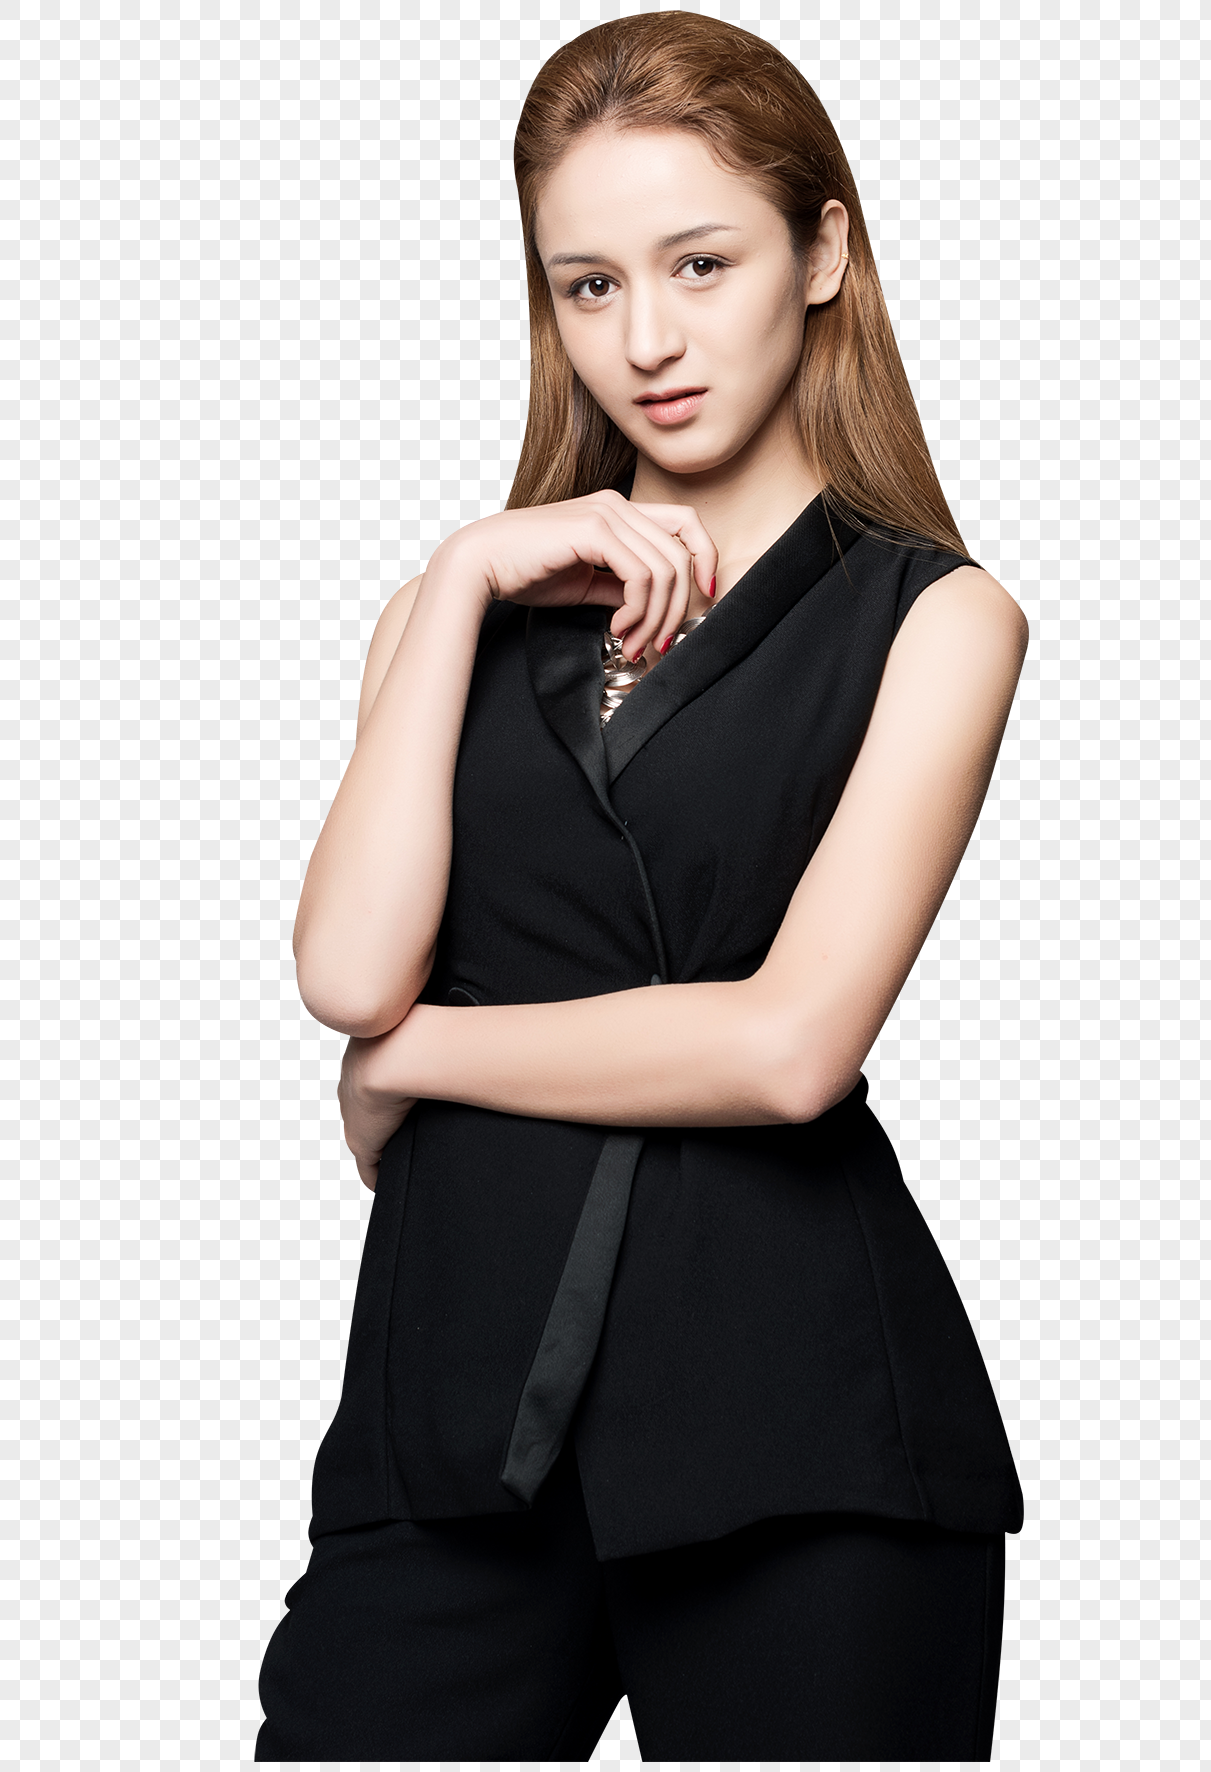 Women In Business Fashion Png Image Picture Free Download